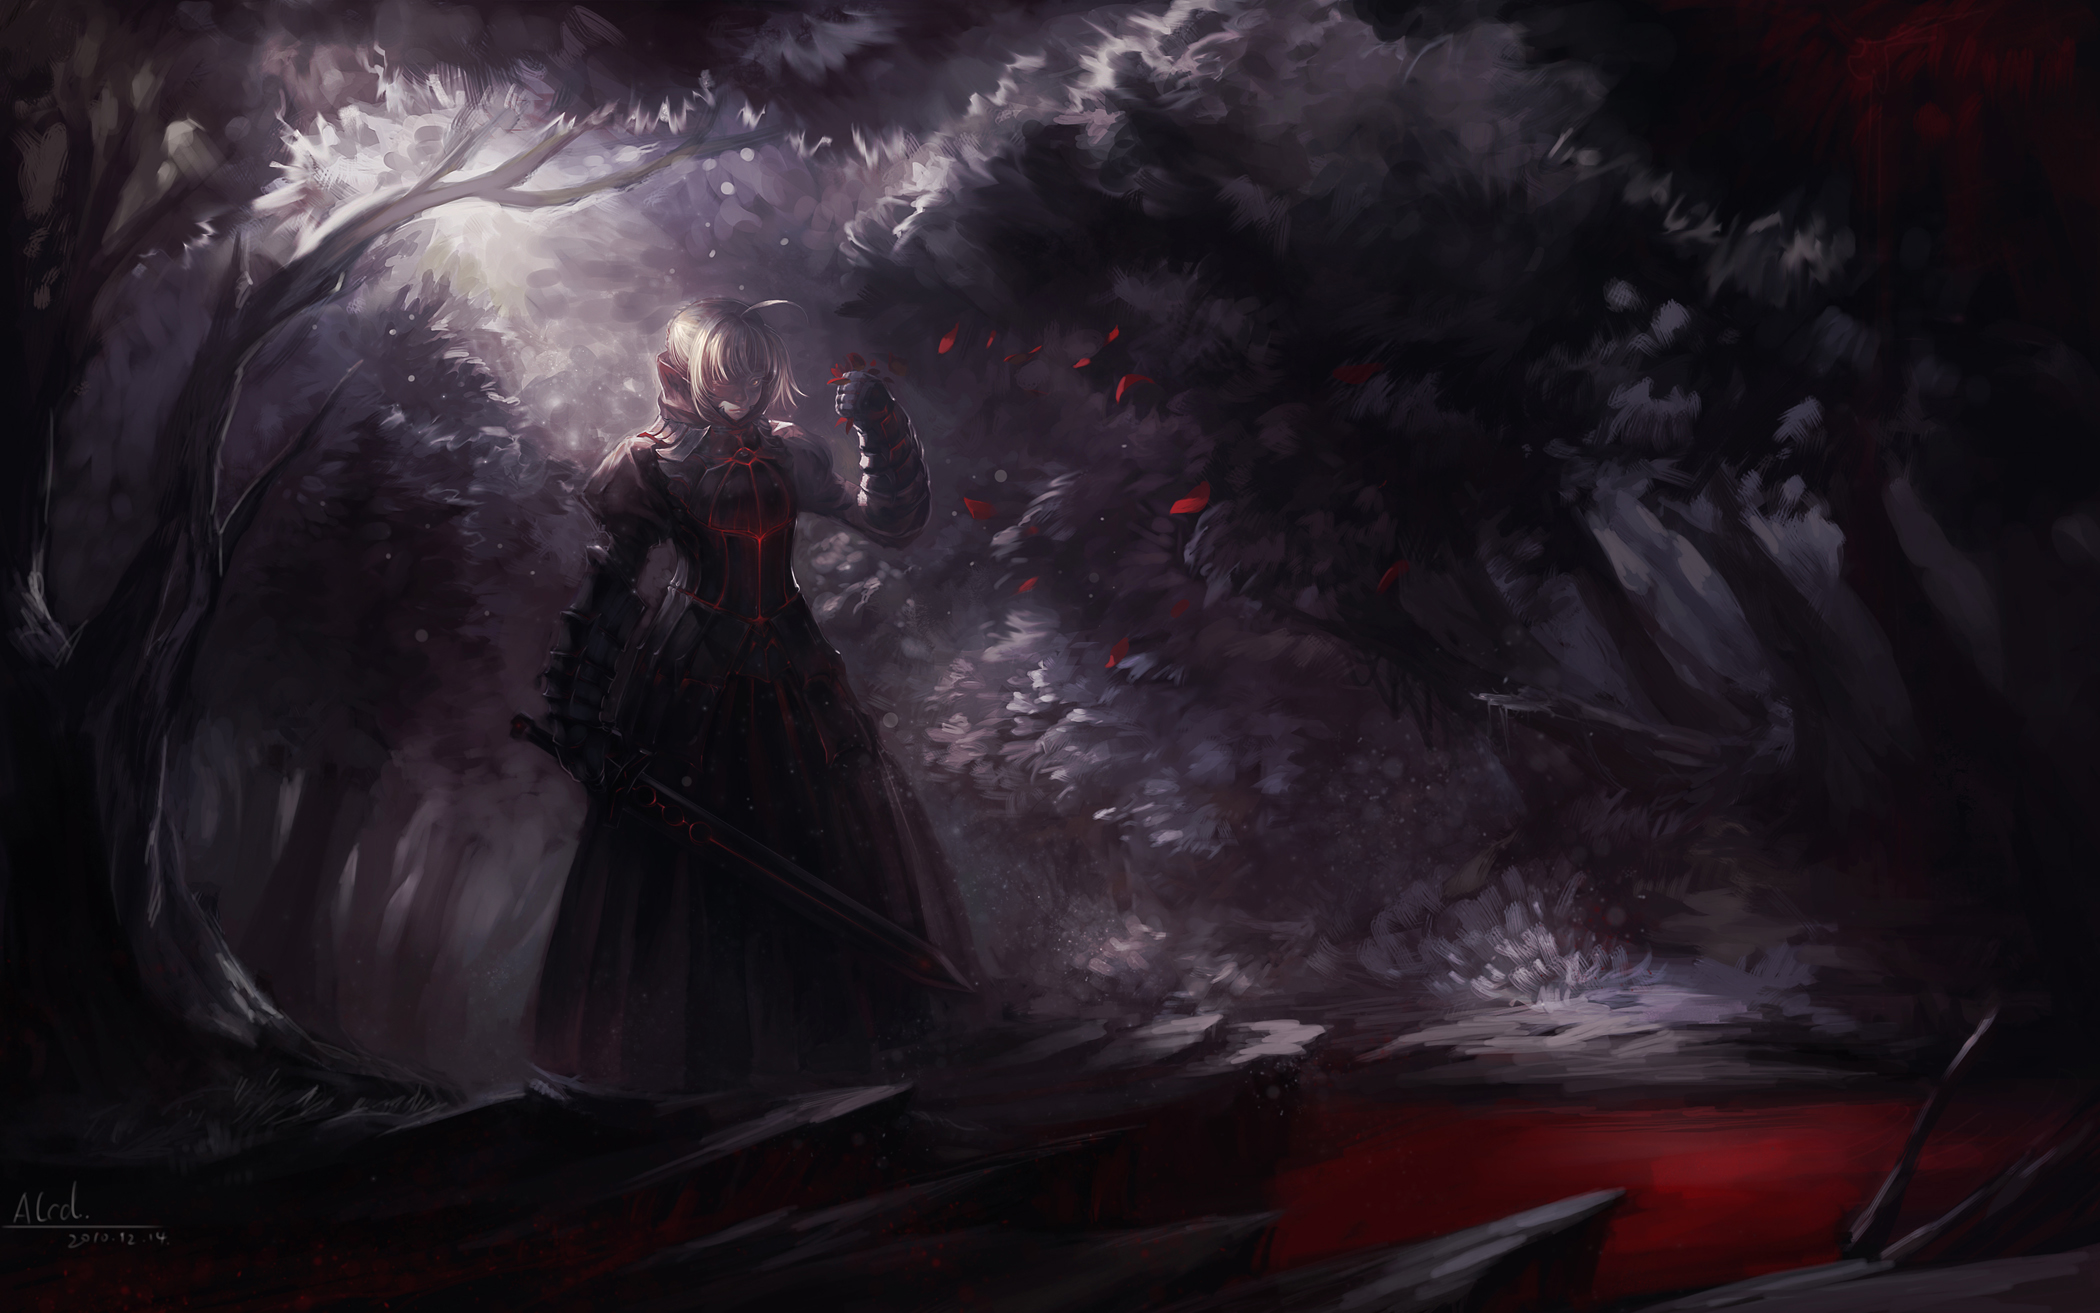 Saber Alter Fate Stay Night Zerochan Anime Image Board